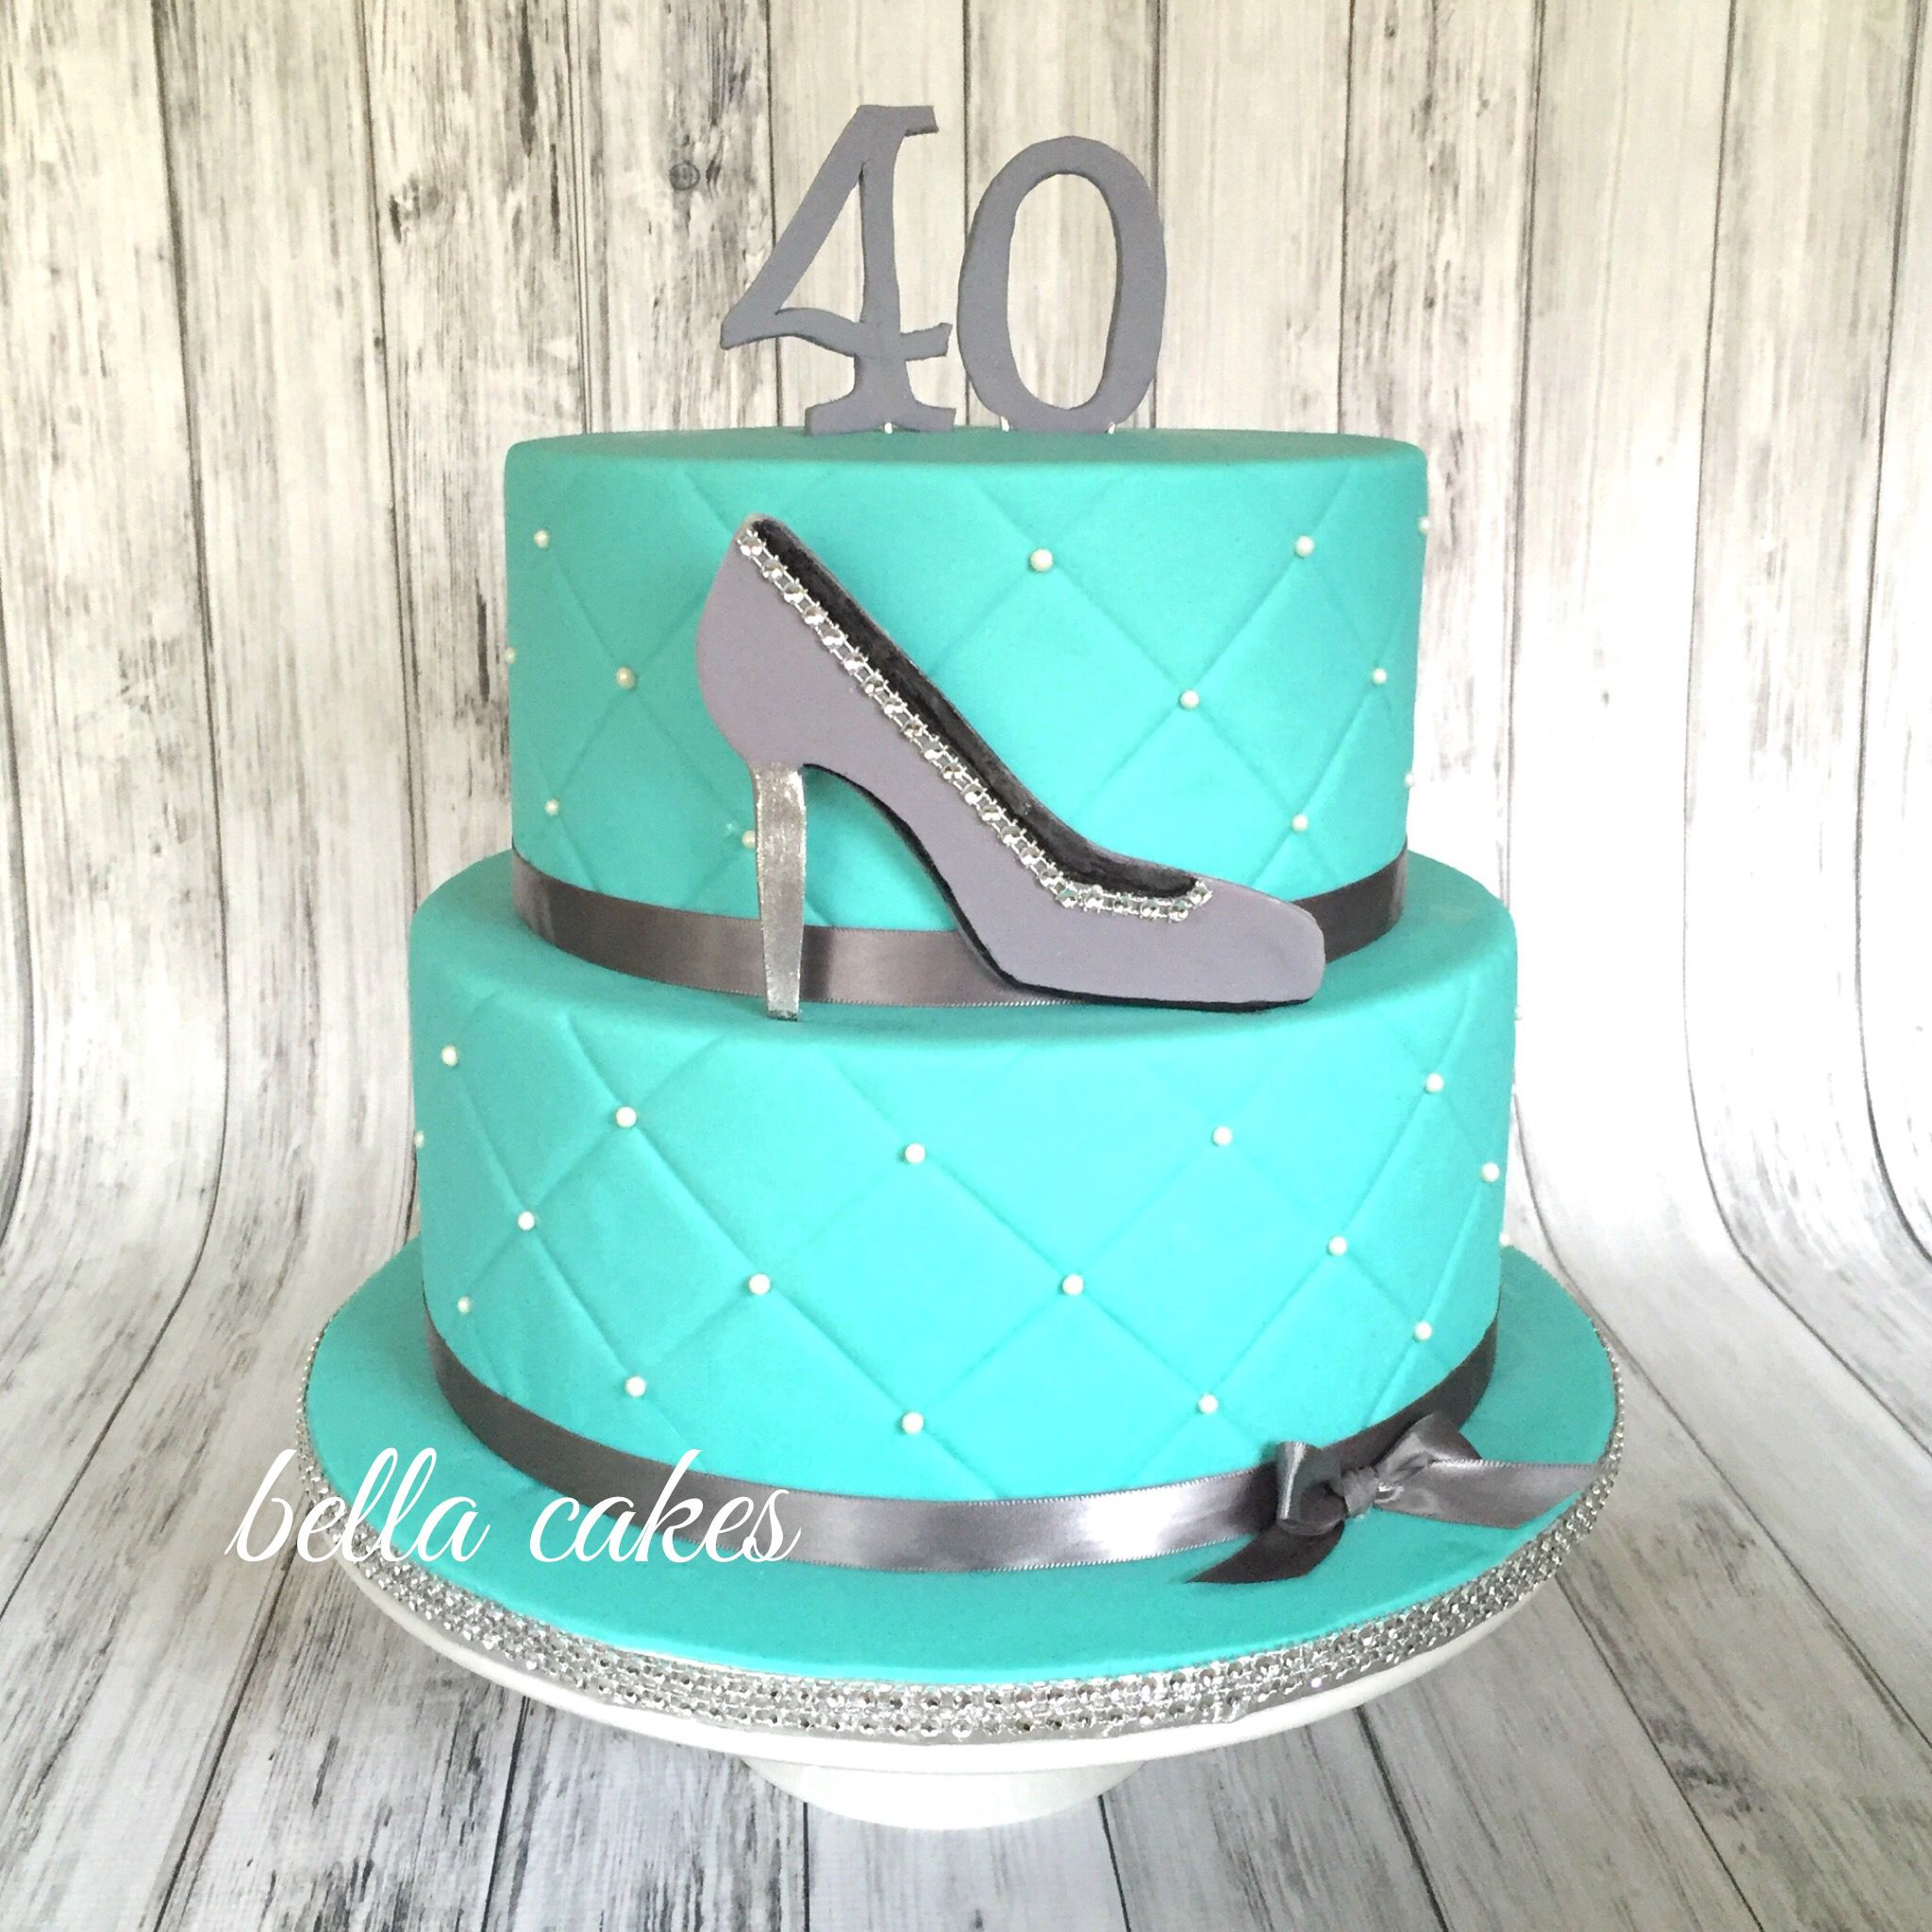 Excellent 40Th Birthday Tiffany Co Themed Cake Bella Cakes With Images Funny Birthday Cards Online Alyptdamsfinfo